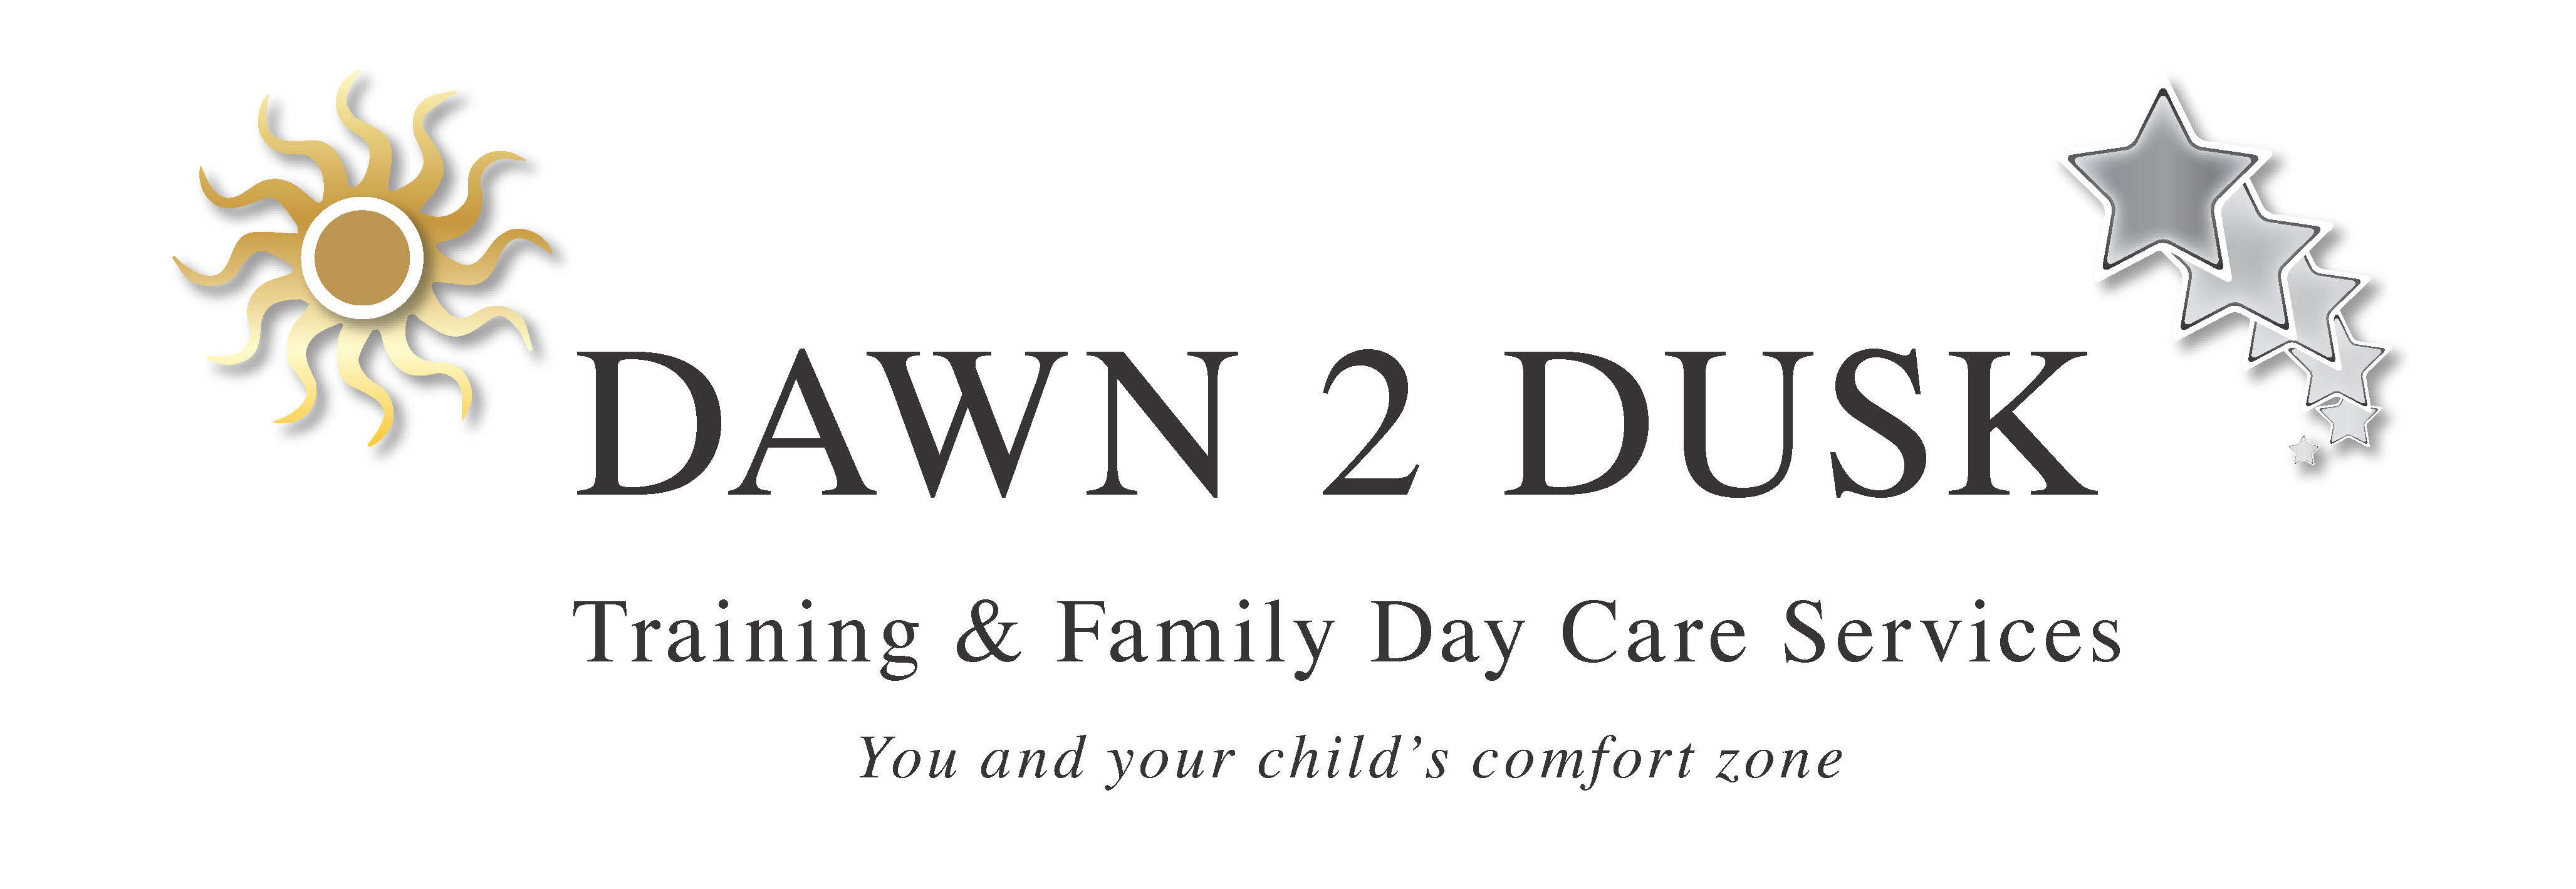 Dawn 2 Dusk Family Day Care Services Pty Ltd